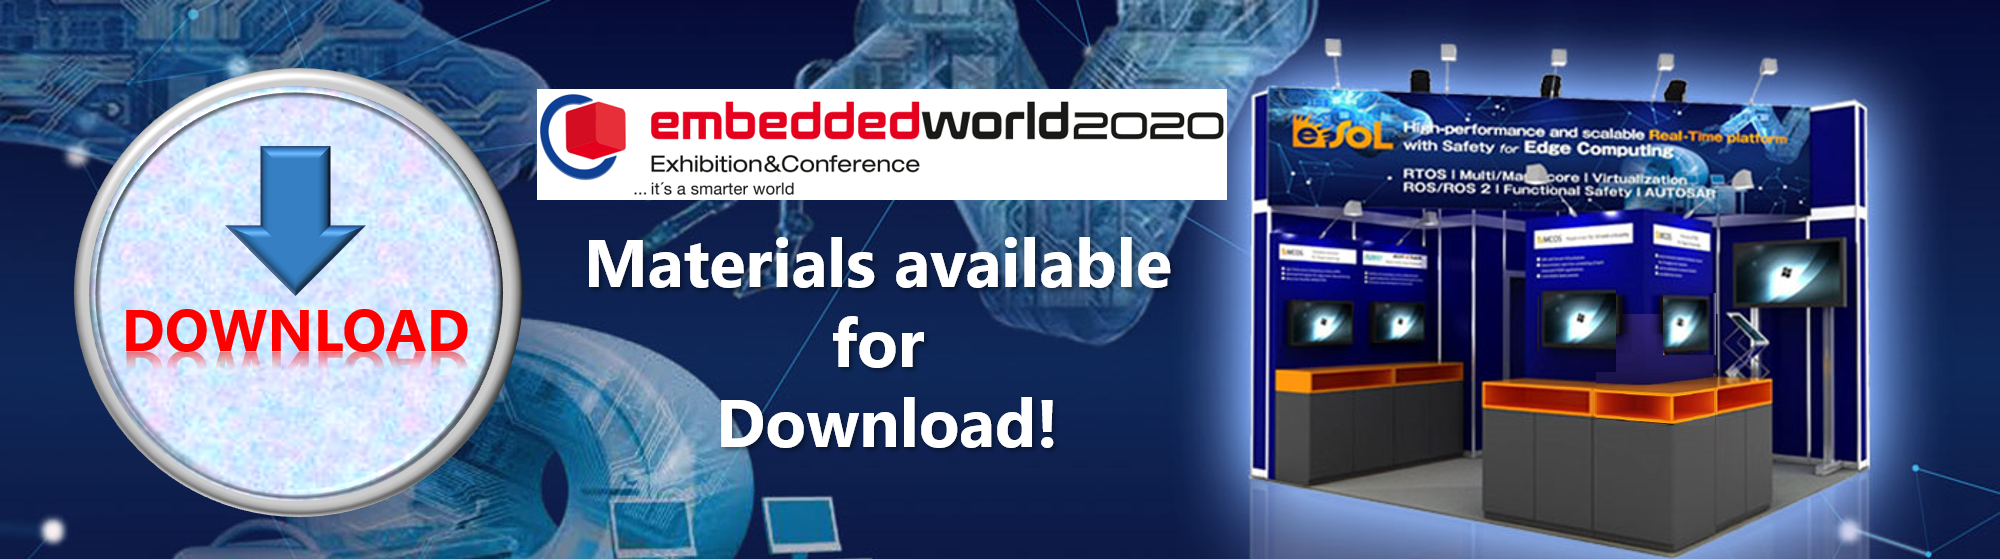 Embedded World 2020 materials available for Download!